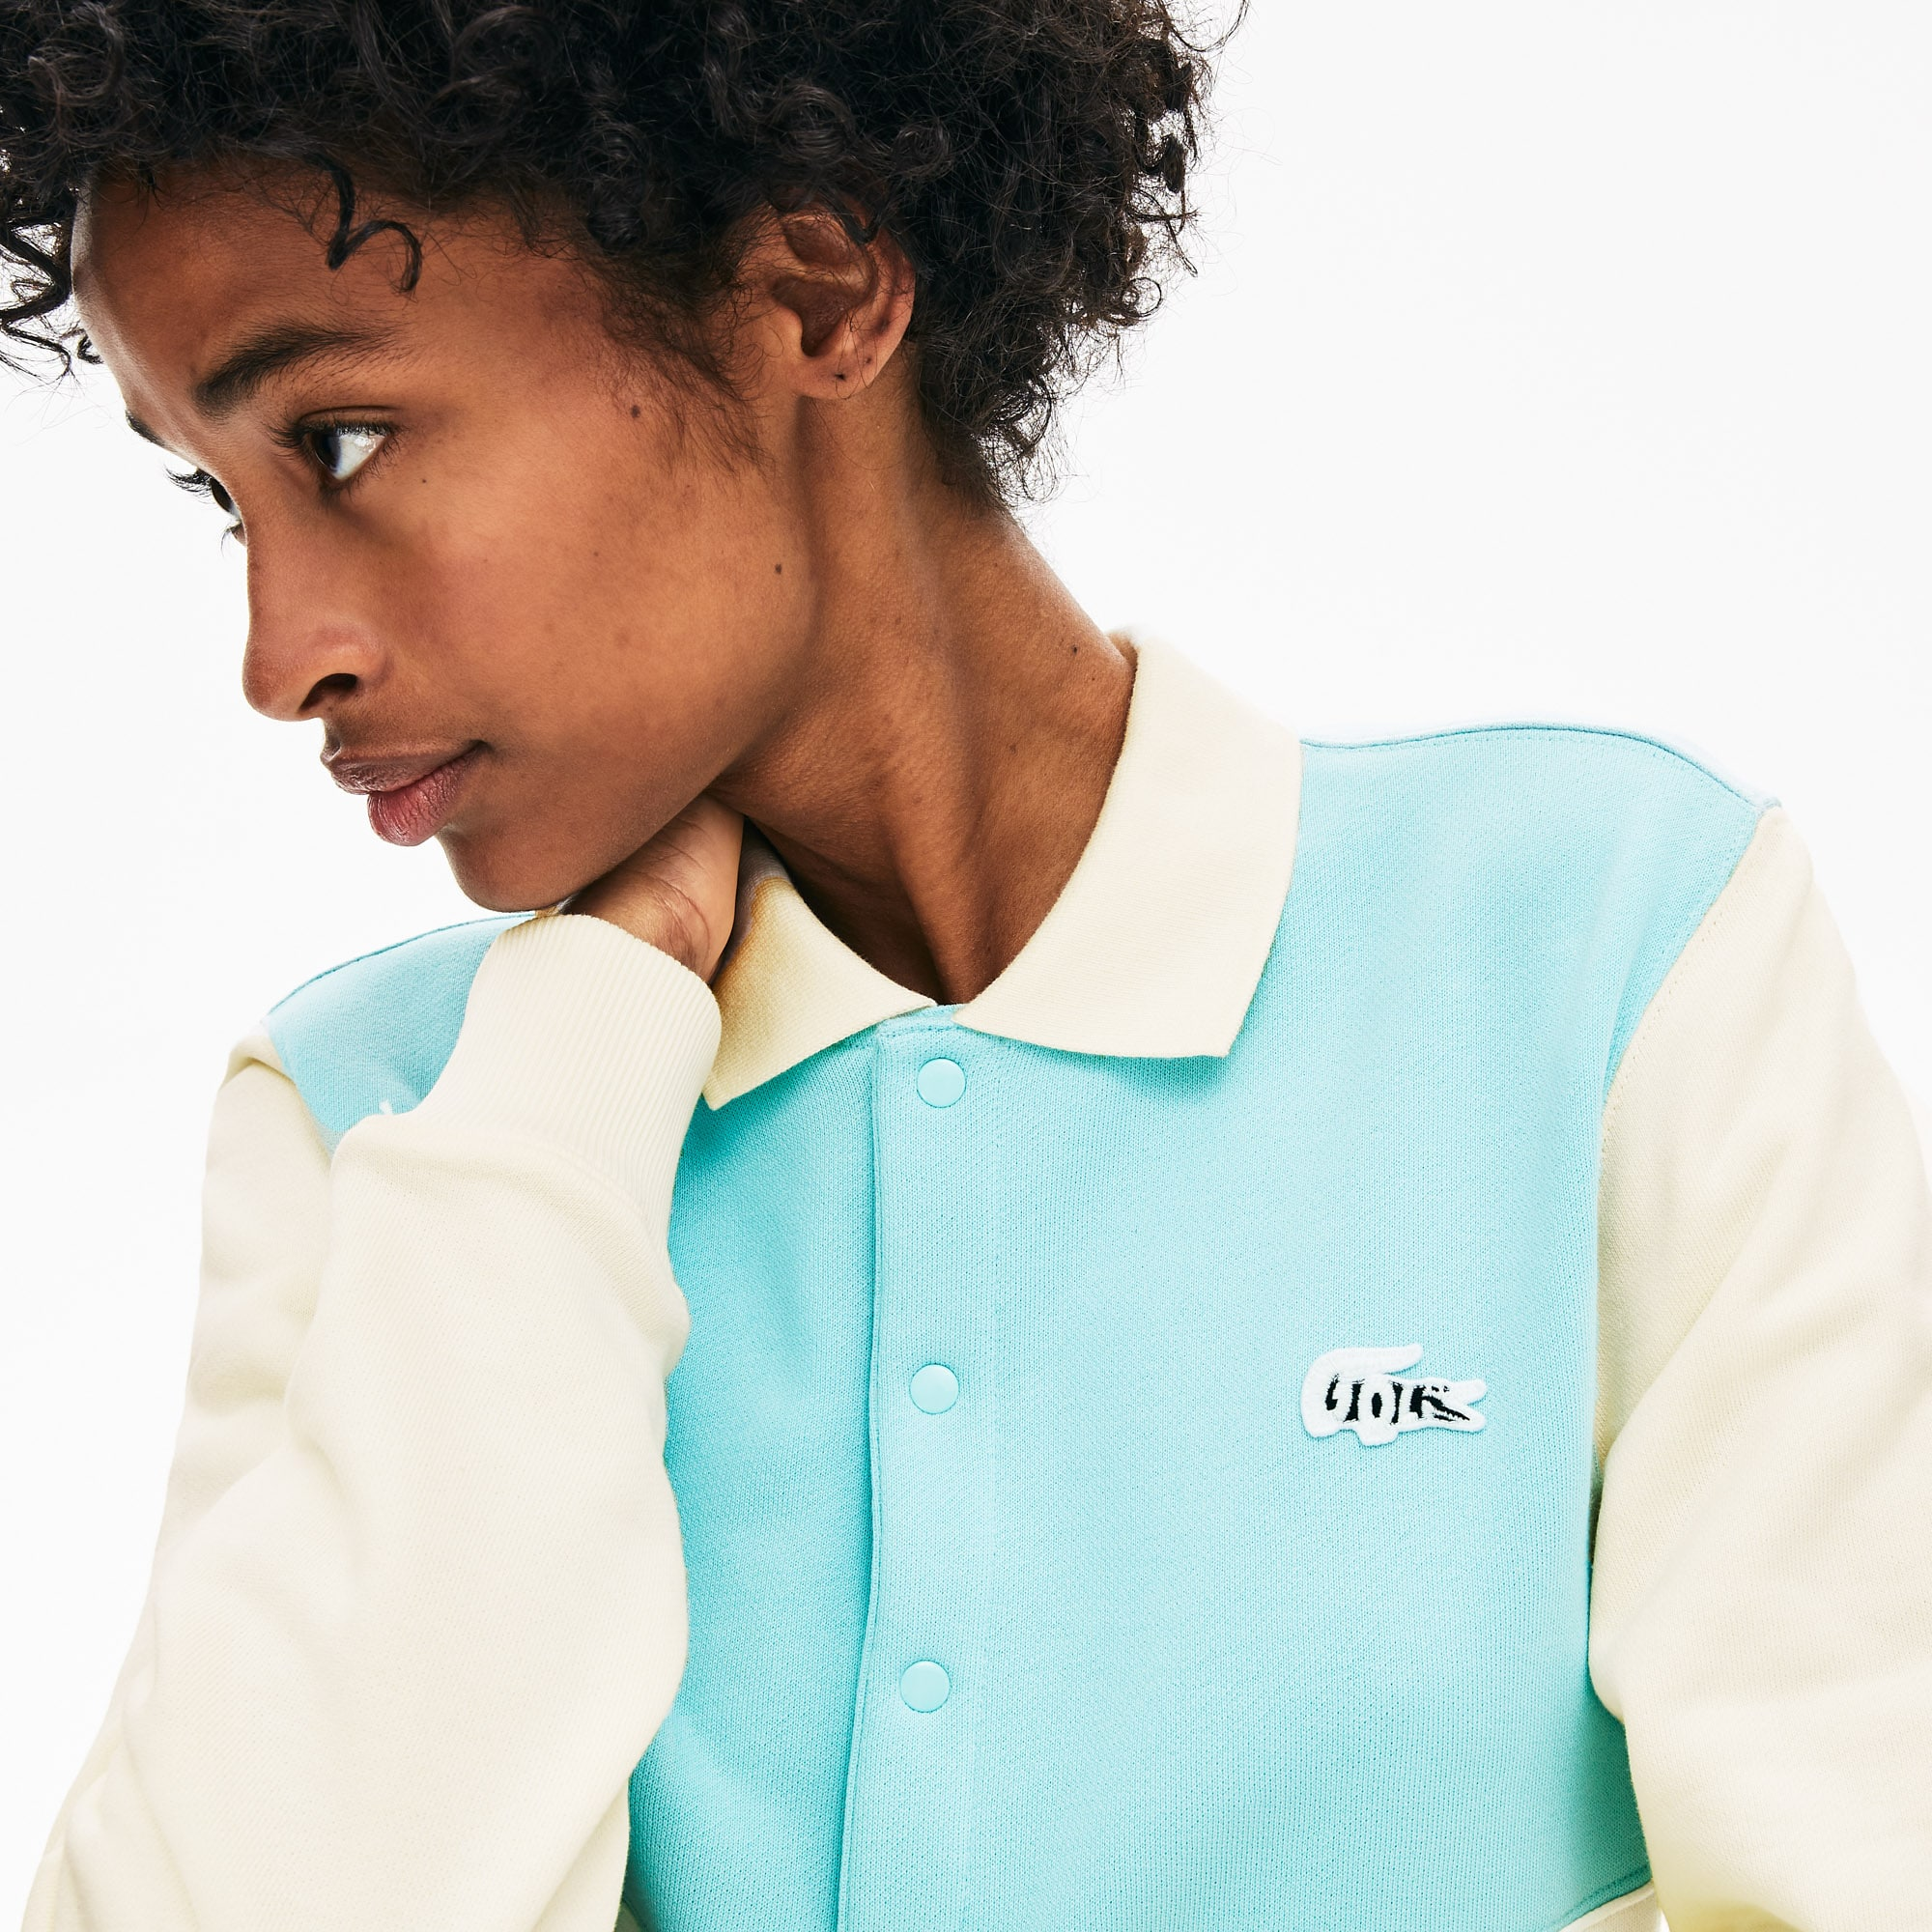 Lacoste x GOLF le FLEUR Two-Tone Fleece Sweatshirt